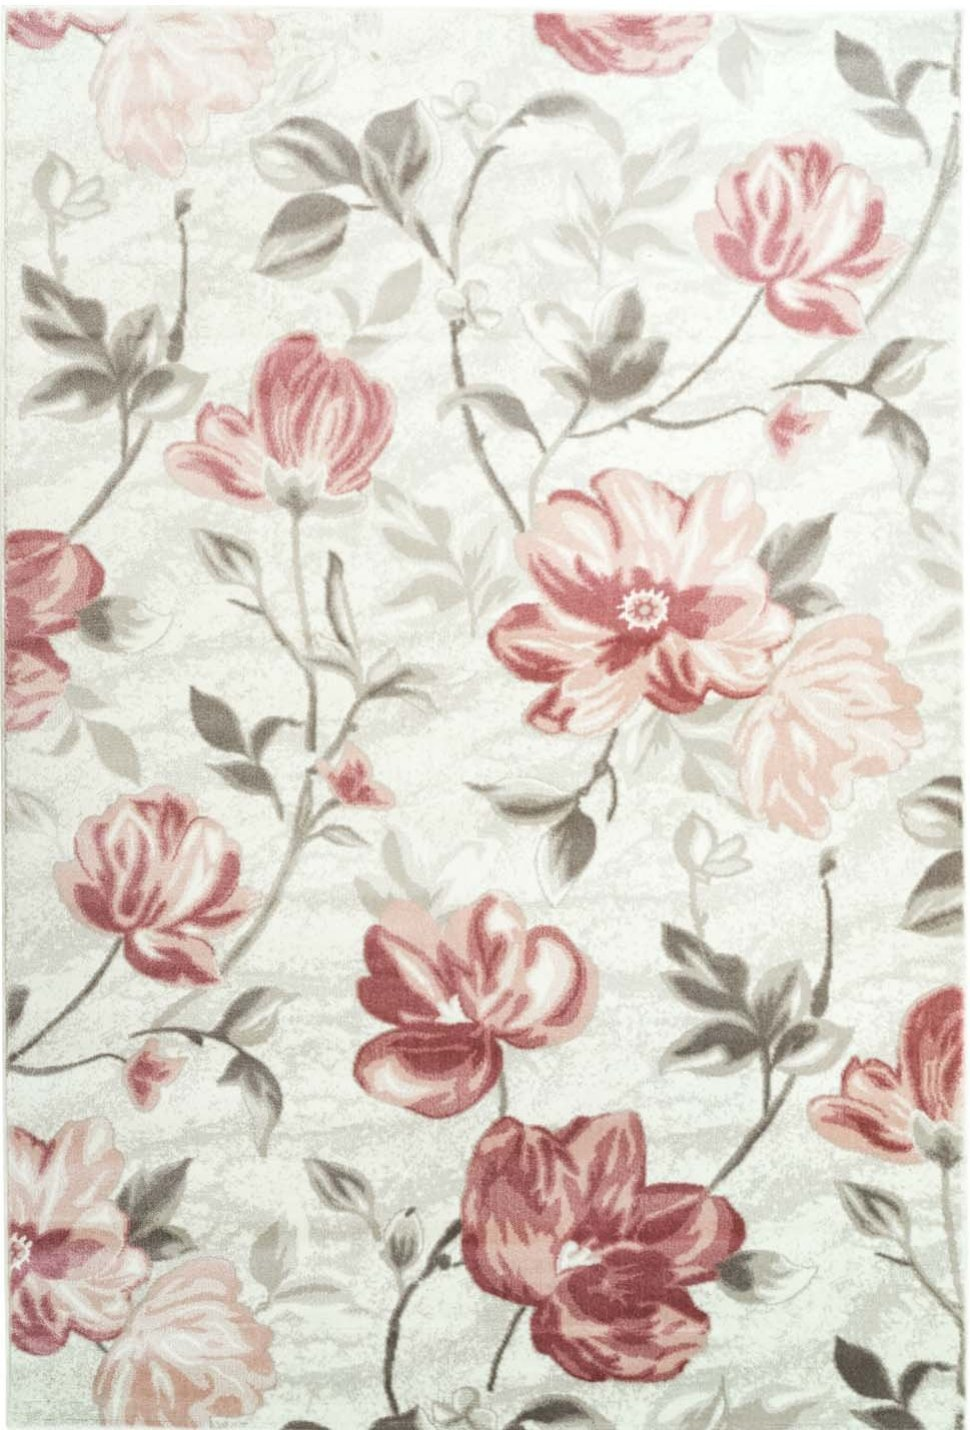 Area Rug Begonia Floral Modern Contemporary Synthetic Living Room Rug, Dining Area Rug (Pink, 4 x 6 (120cm x 170cm))